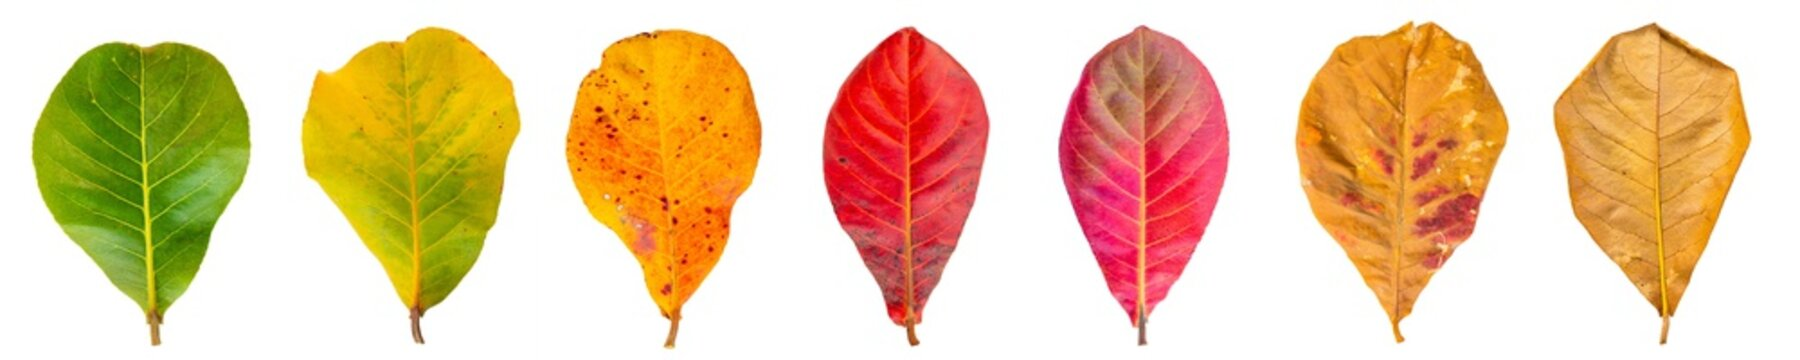 Cycle of leaves change seasons. Sea almond Leaves isolated on a white background with clipping path.